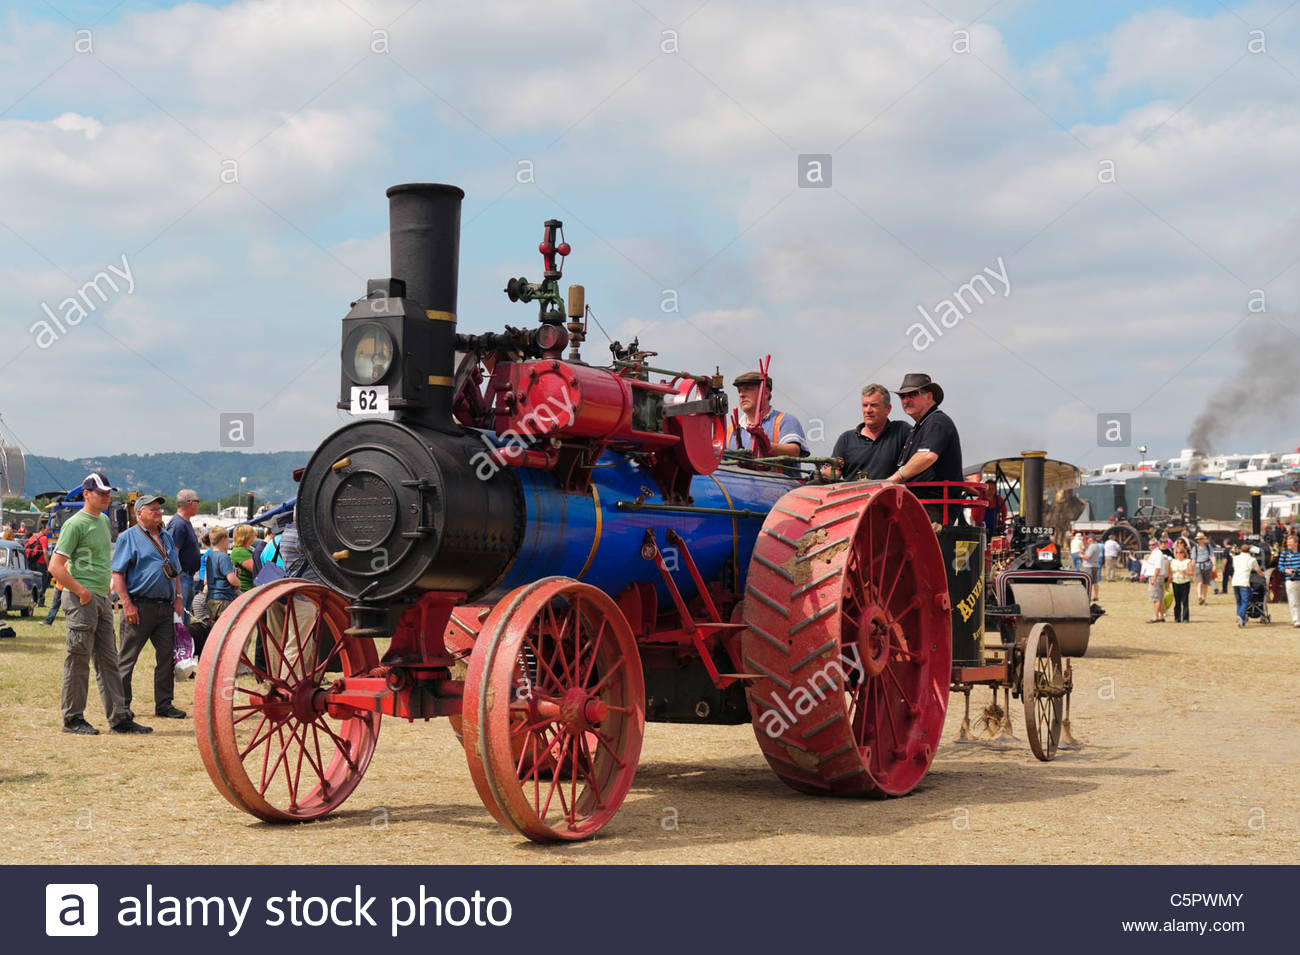 Advance 20NHP single direct ploughing engine 1906, at Welland Steam Rally 2011, England, UK. - Stock Image